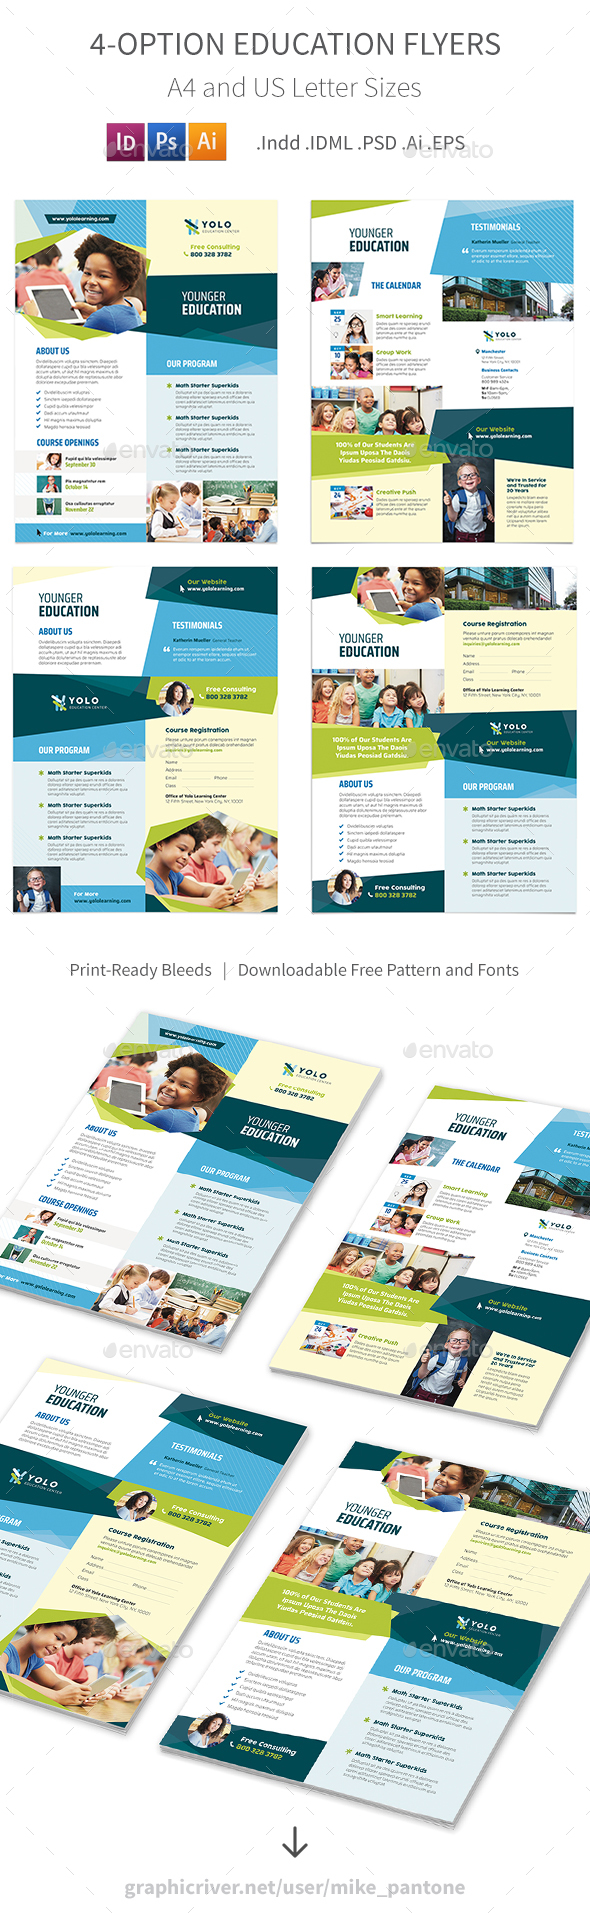 GraphicRiver Education Flyers 10 4 Options 20745609